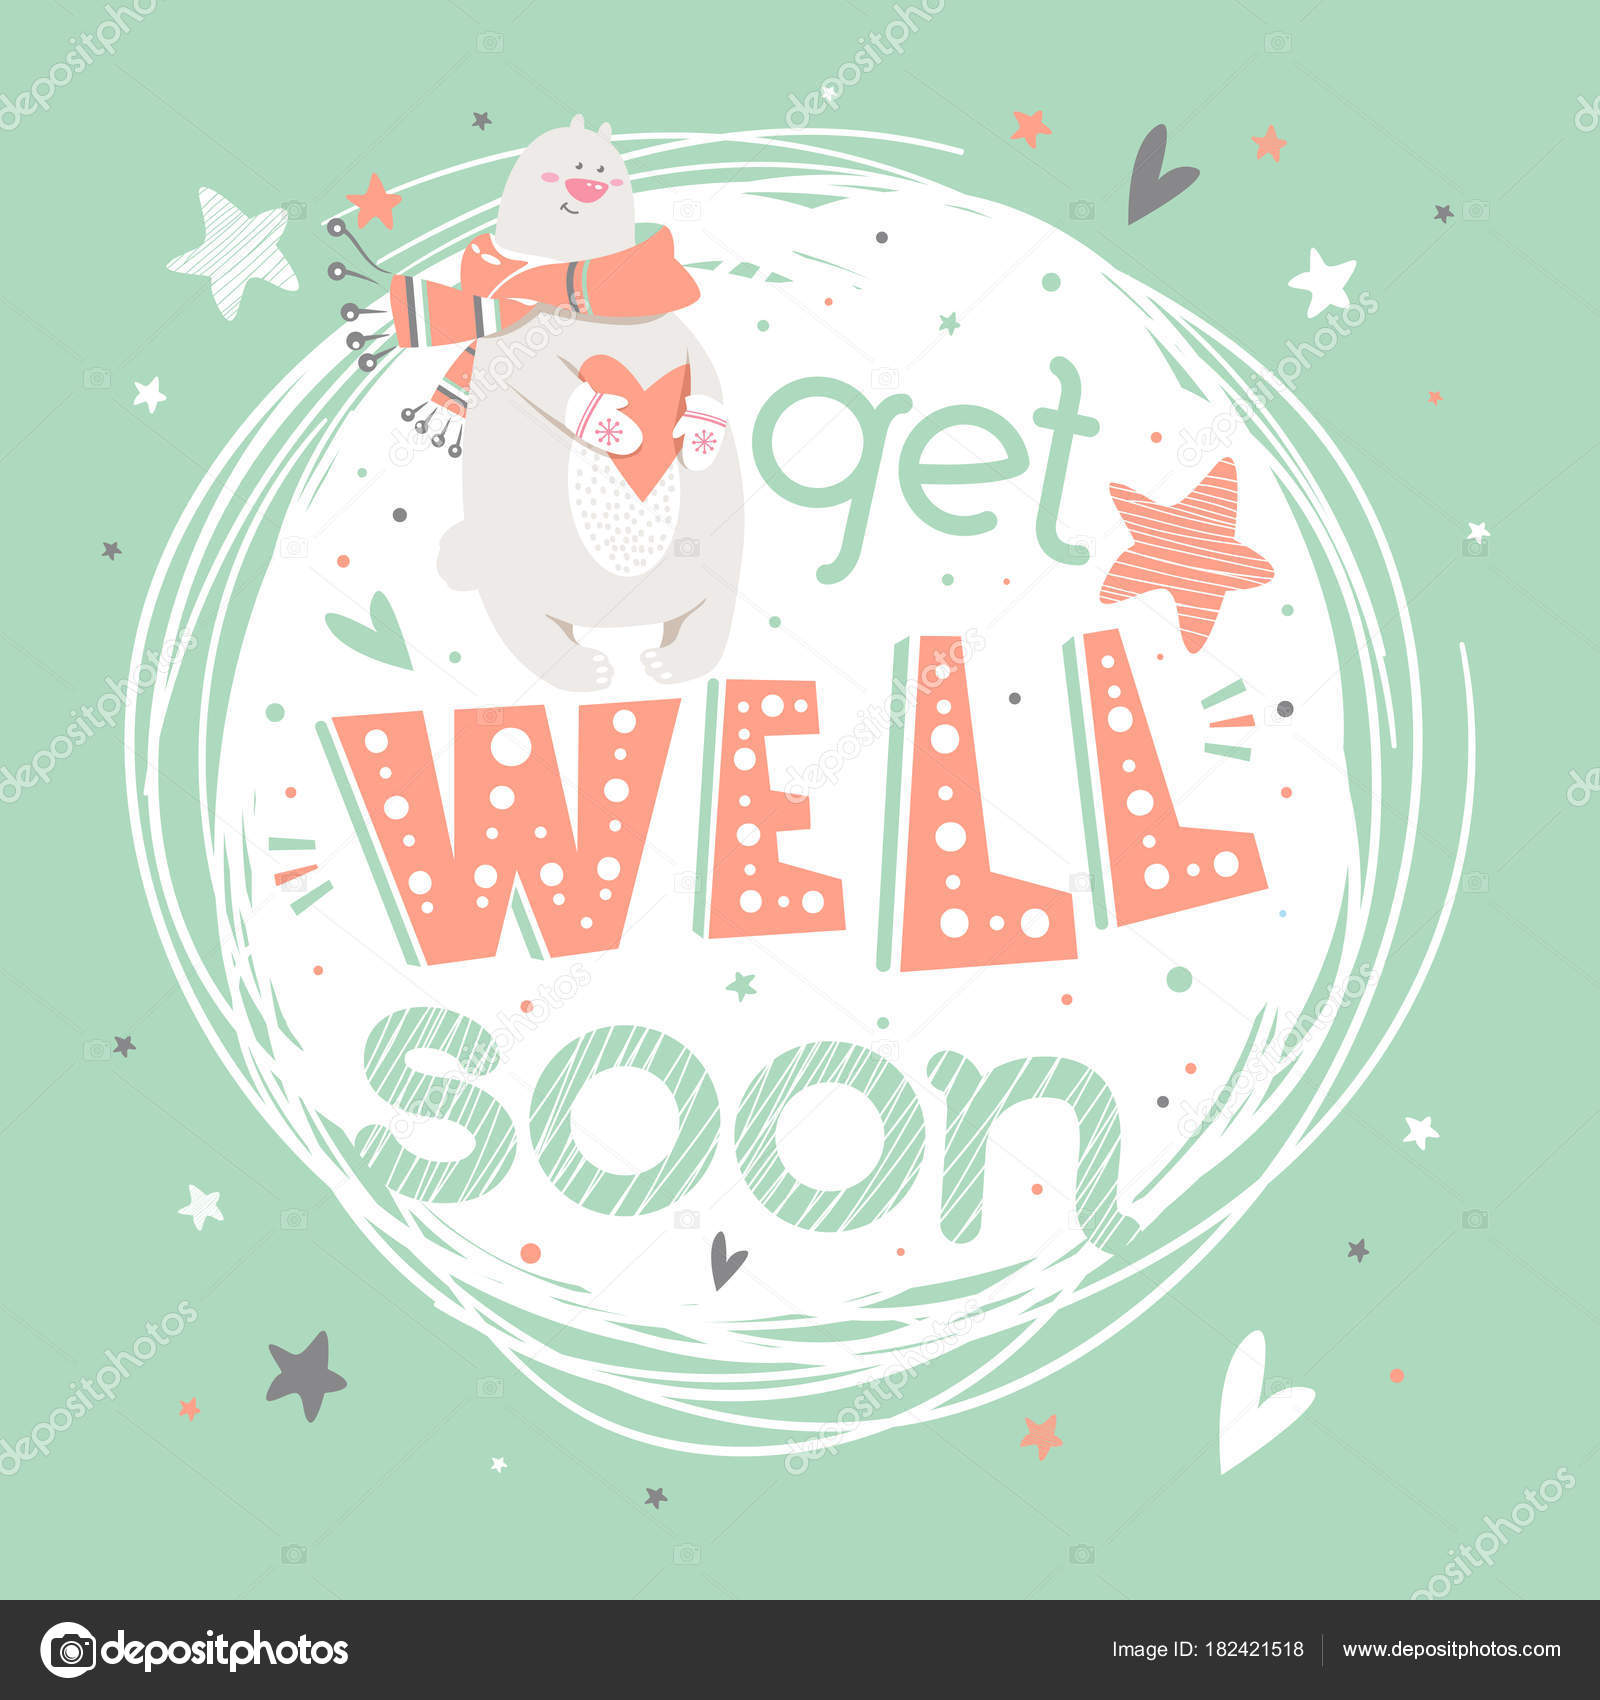 motivational poster hand drawn lettering get well soon cute art